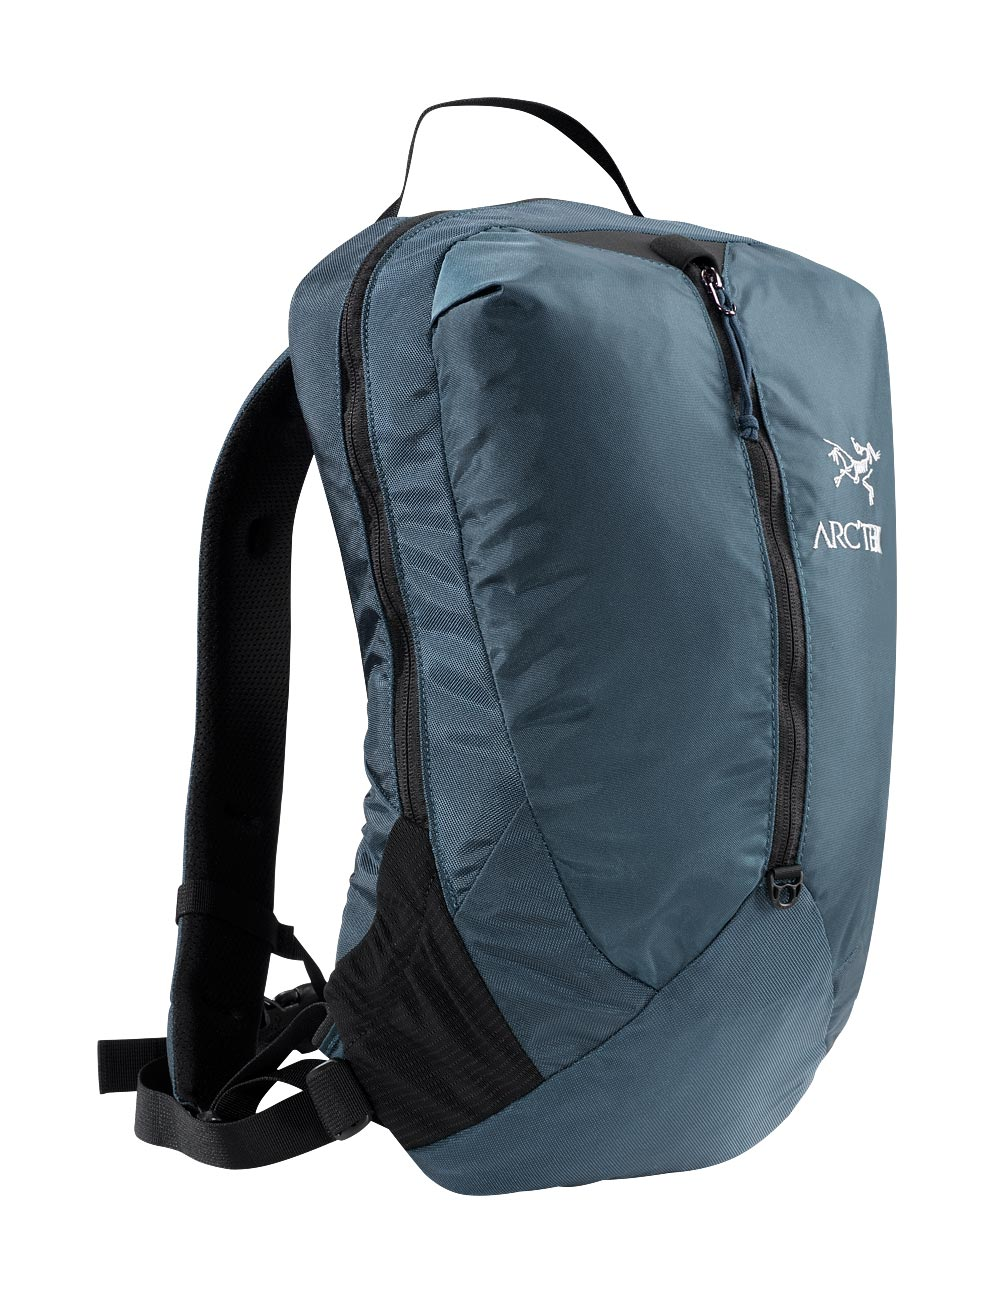 Arcteryx Women Nightshade Fly 14